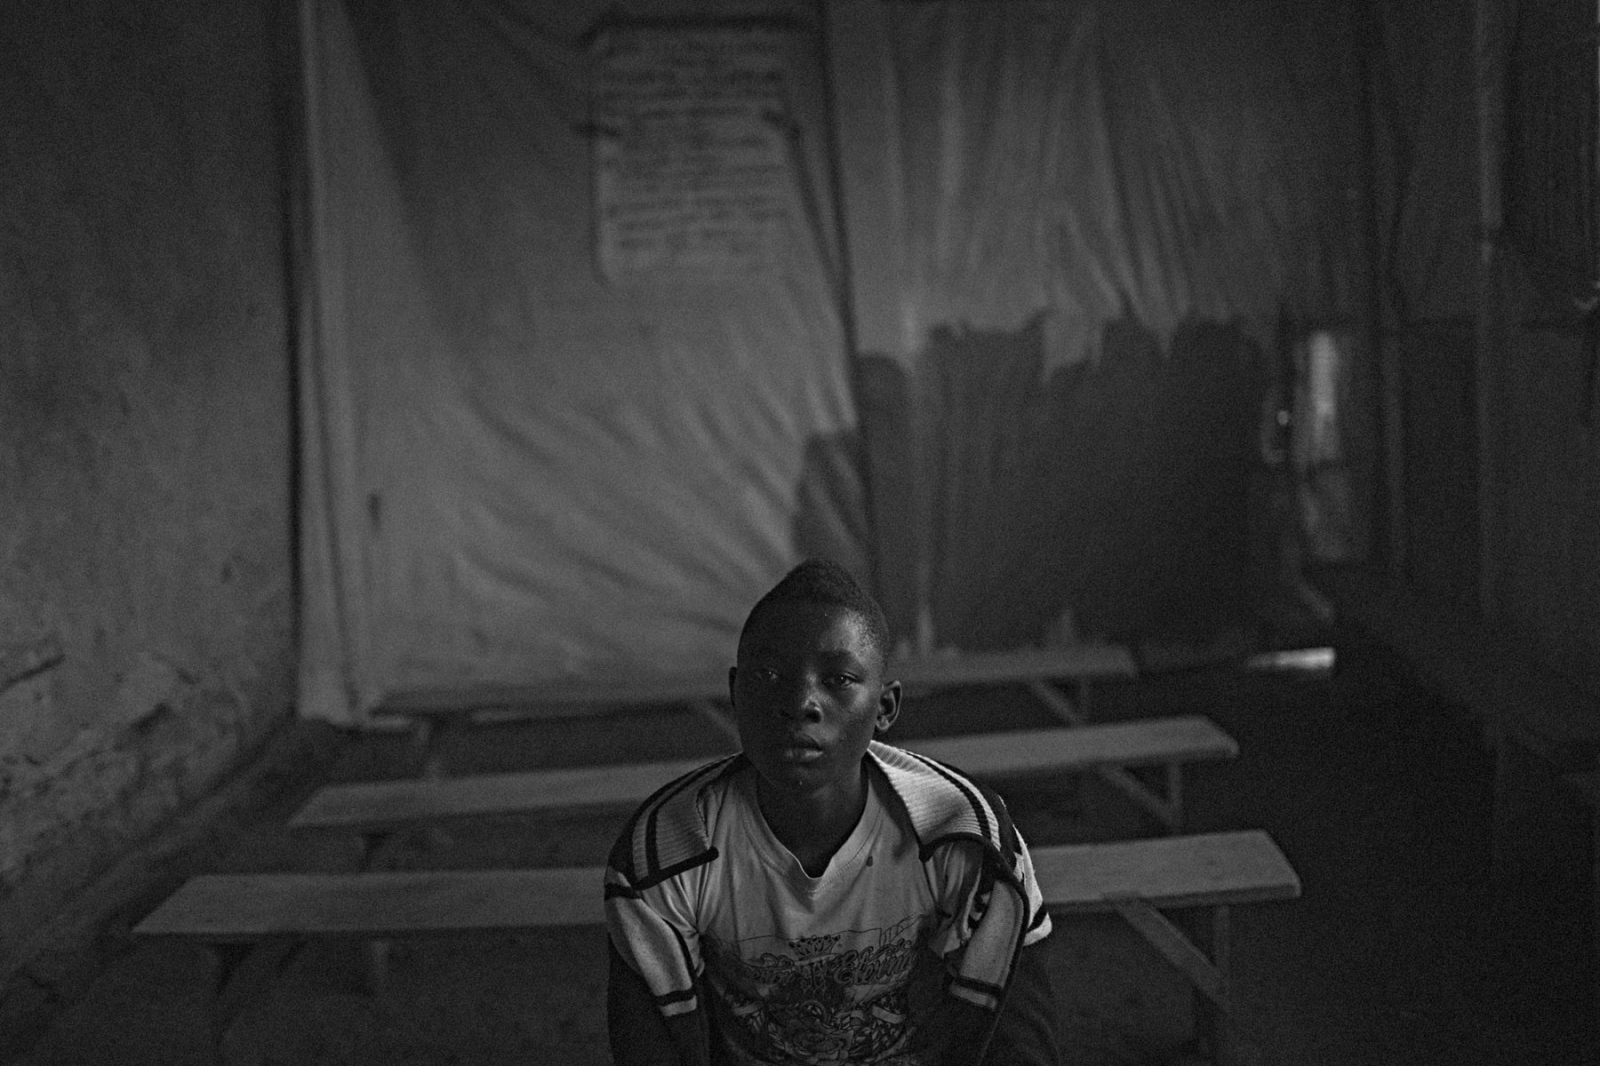 Former PARECO child soldier Habyarimana sits in a makeshift classroom in UPDECO's reintegration center in Rutshuru, Eastern DRC on Monday, July 21, 2014. Many child soldiers spend years in various militia groups in the east of the country, sometimes leaving them on their own accord, or after being convinced by elders or militia leaders to put down their weapons. The road to reintegration into society again is often a long one, especially if the child's family does not wish for them to return. Many of the boys and girls have missed out on years of schooling, and if they are older than 18, are not legally allowed to be in transit centers run by NGOs where they can receive some type of assistance in reintegration. Even so, many of these reintegration centers severely lack funding and therapists to help counsel the children, and they return home to the same conditions as before they joined the militia group.